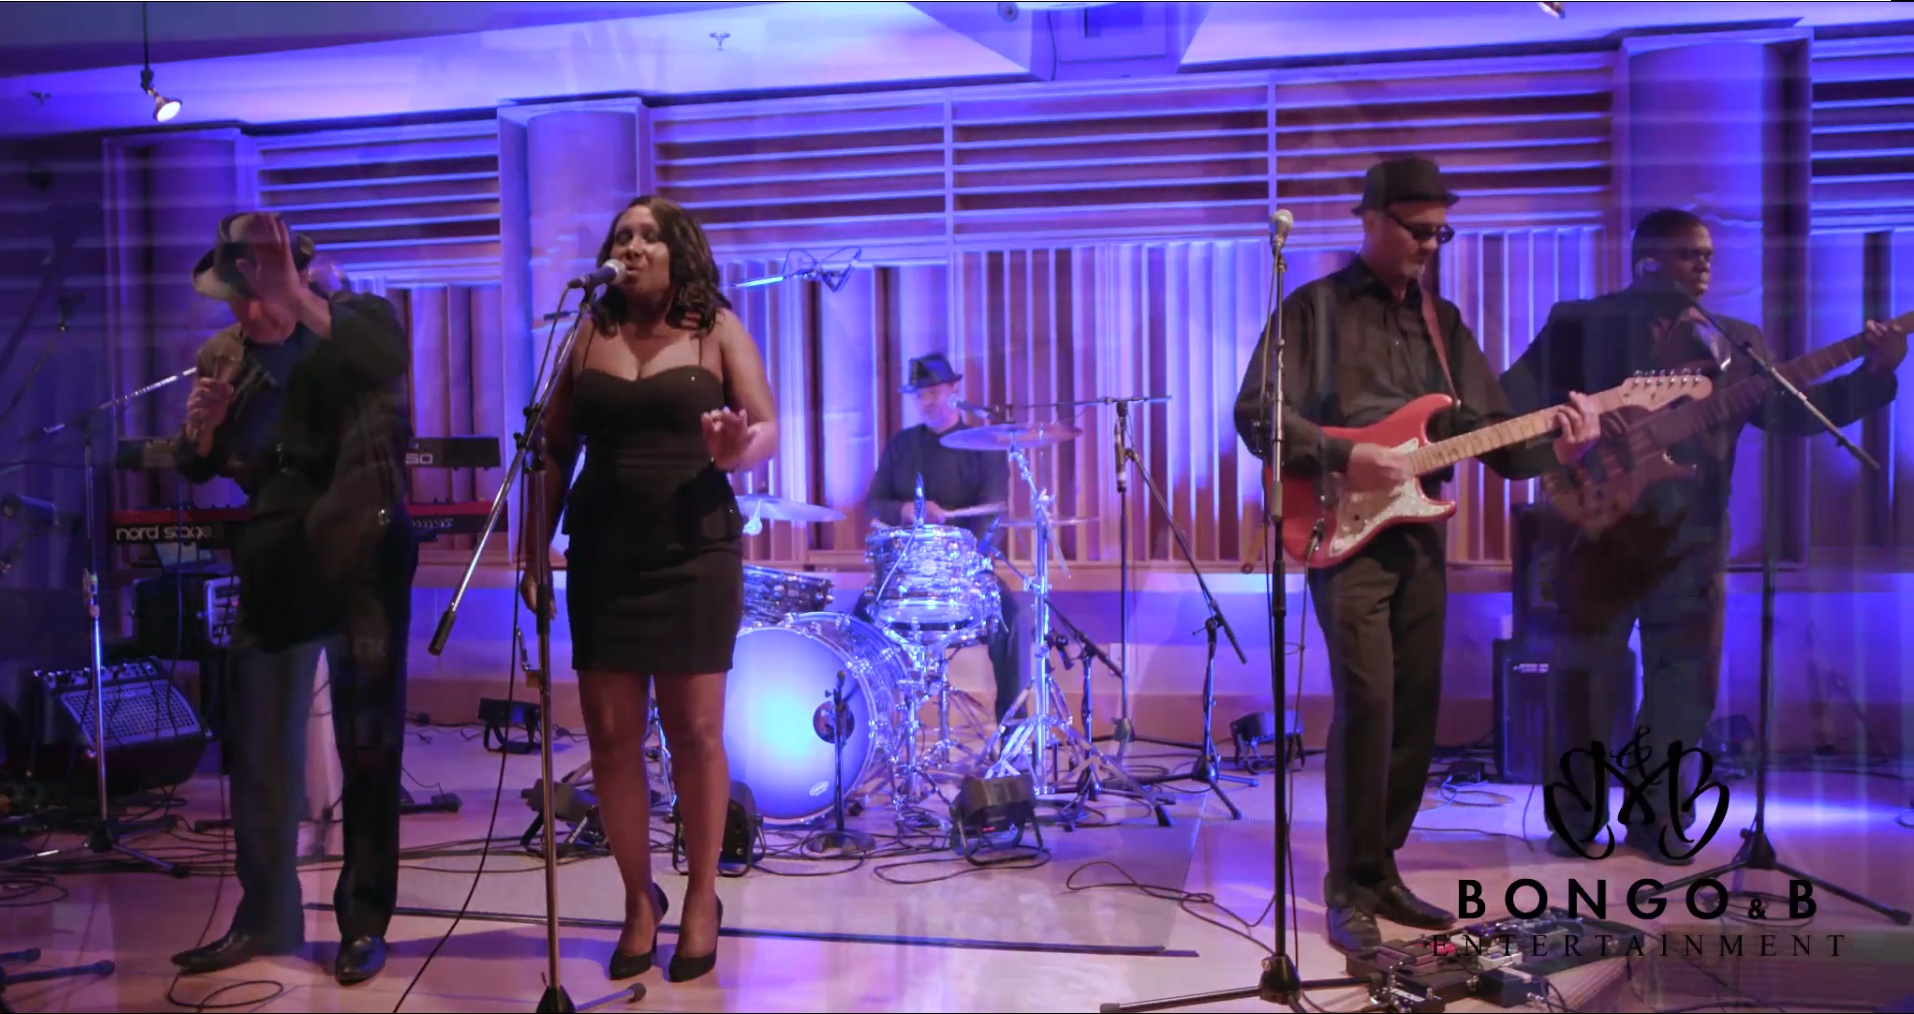 Toronto Wedding / Corporate Band | R&B, Top40, and Classic Hits